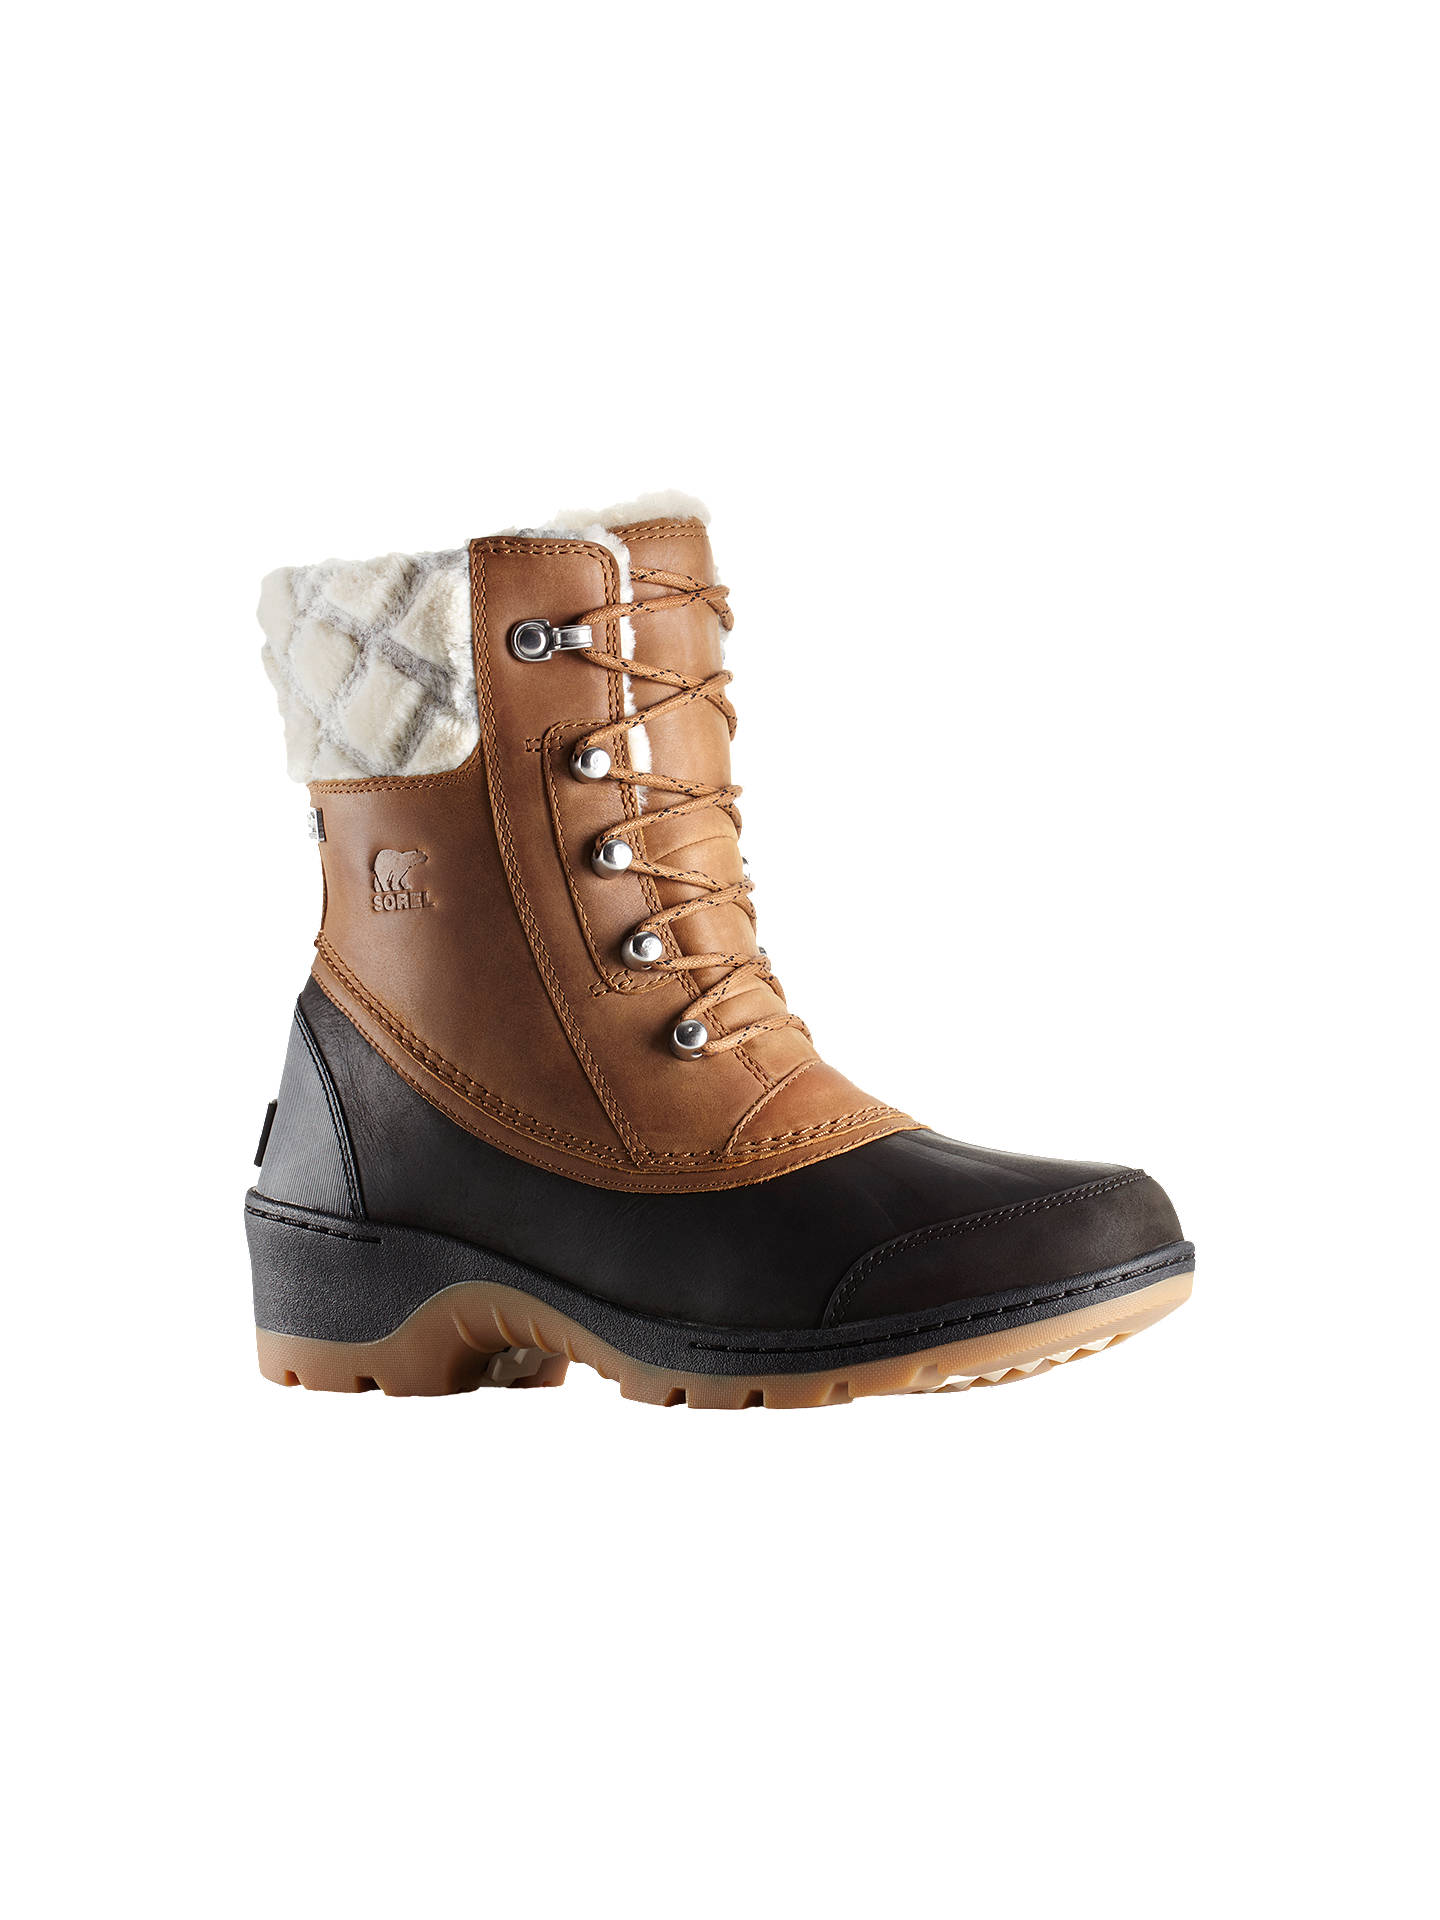 BuySorel Whistler Lace Up Ankle Snow Boots, Brown Leather, 4 Online at johnlewis.com